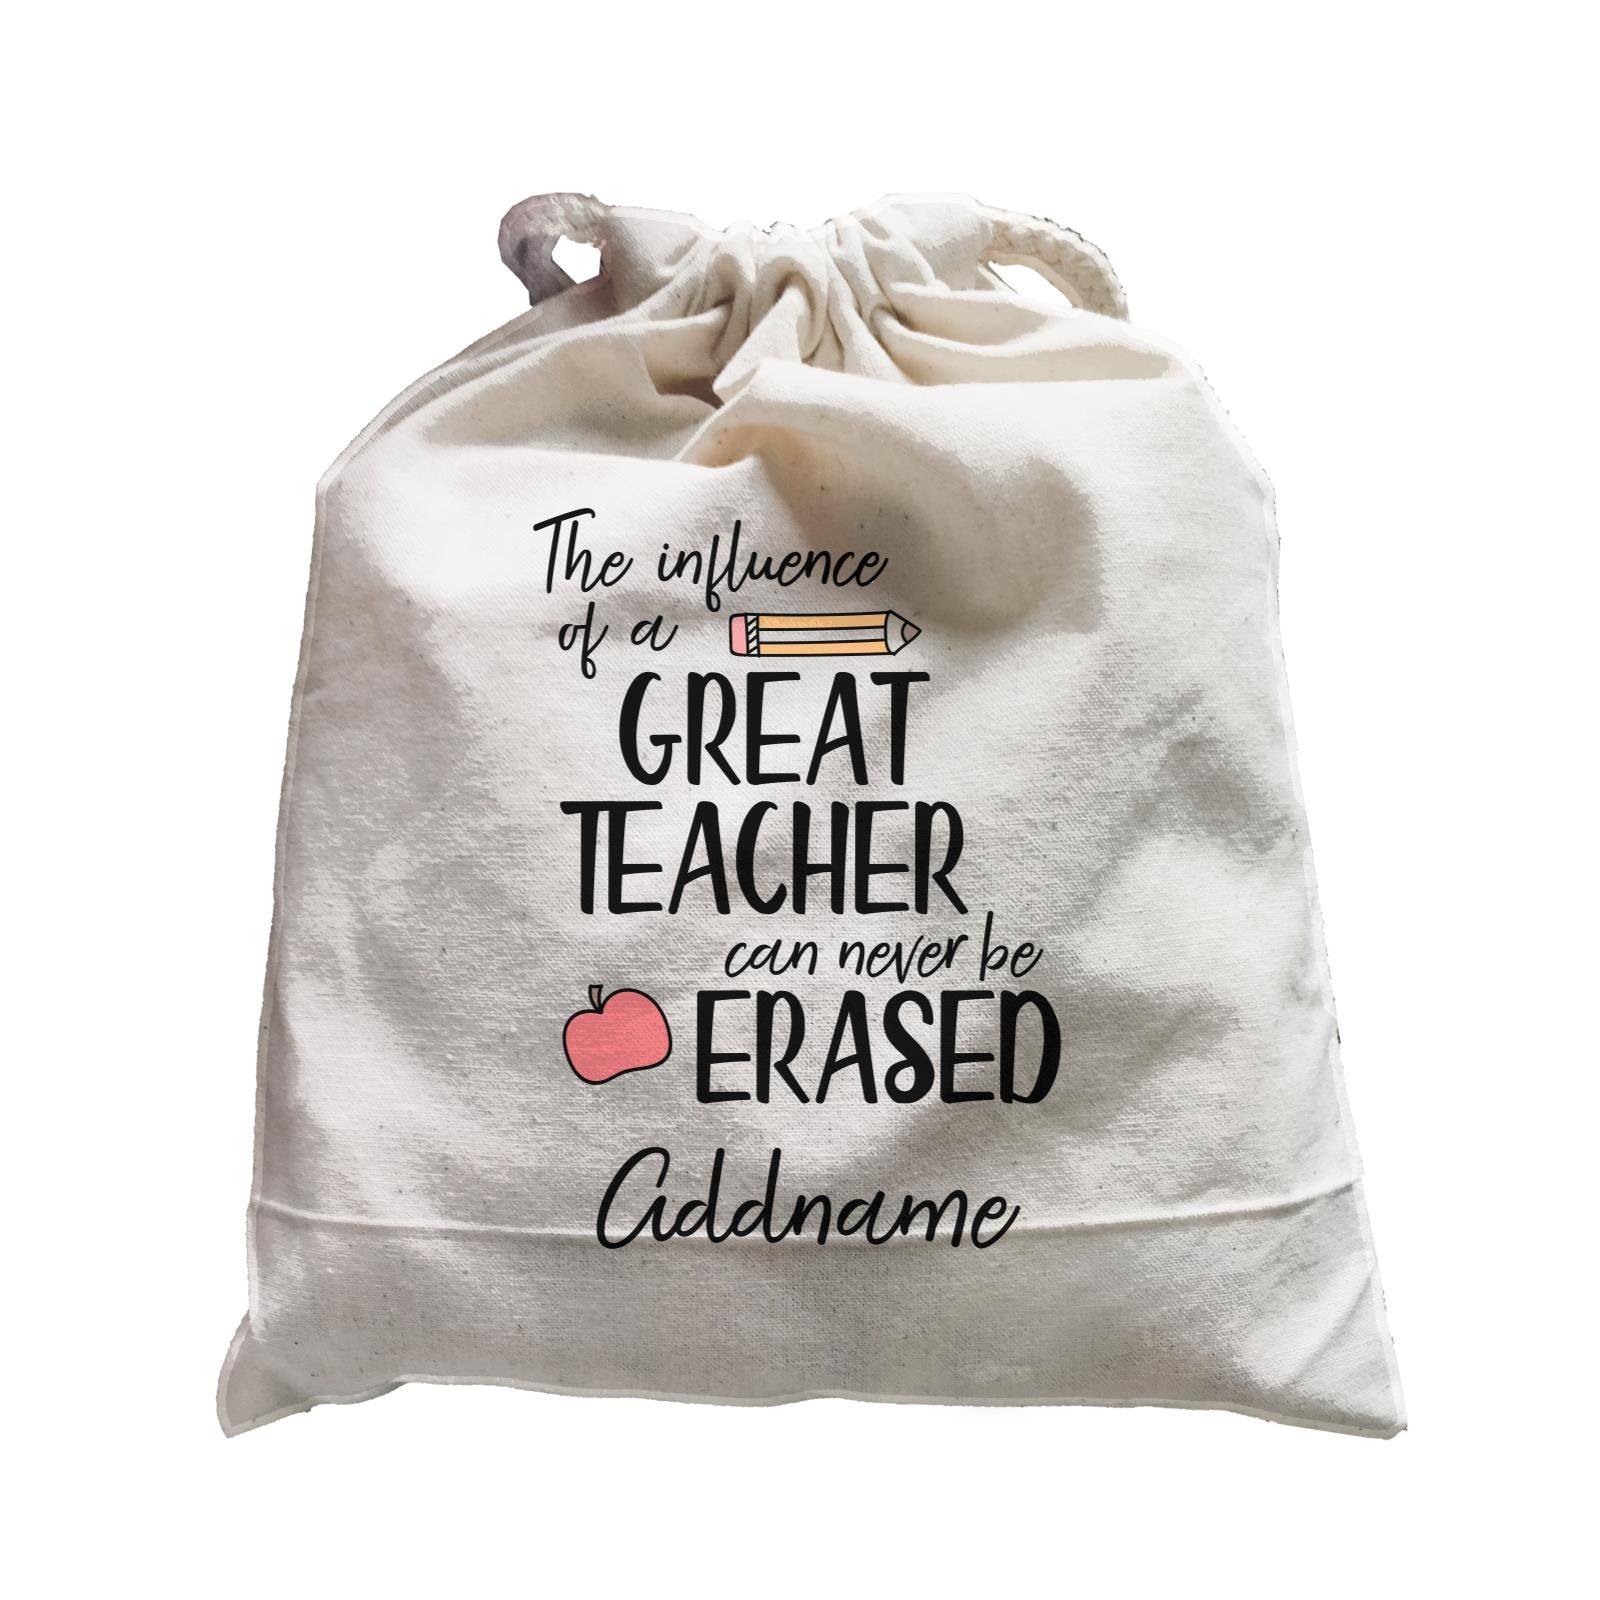 Teacher Quotes The Influence Of A Great Teacher Can Never Be Erased Addname Satchel